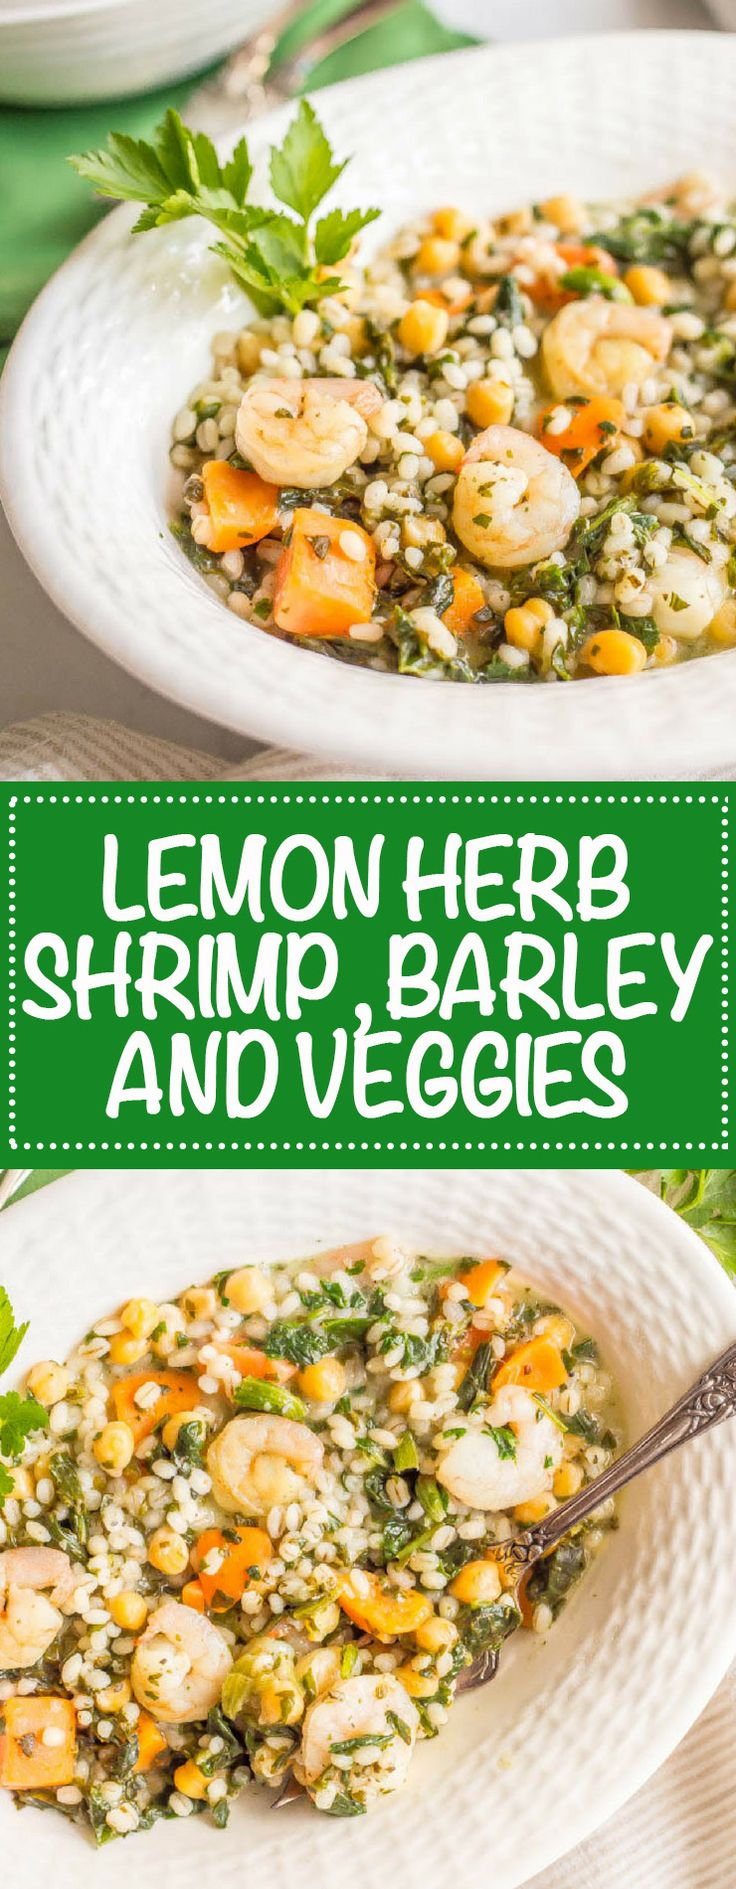 This lemon herb shrimp and veggies dinner is a frozen meal kit entree (#ad) that's microwavable and ready in just 10 minutes. Perfect to have on hand for busy weeks! | www.familyfoodonthetable.com